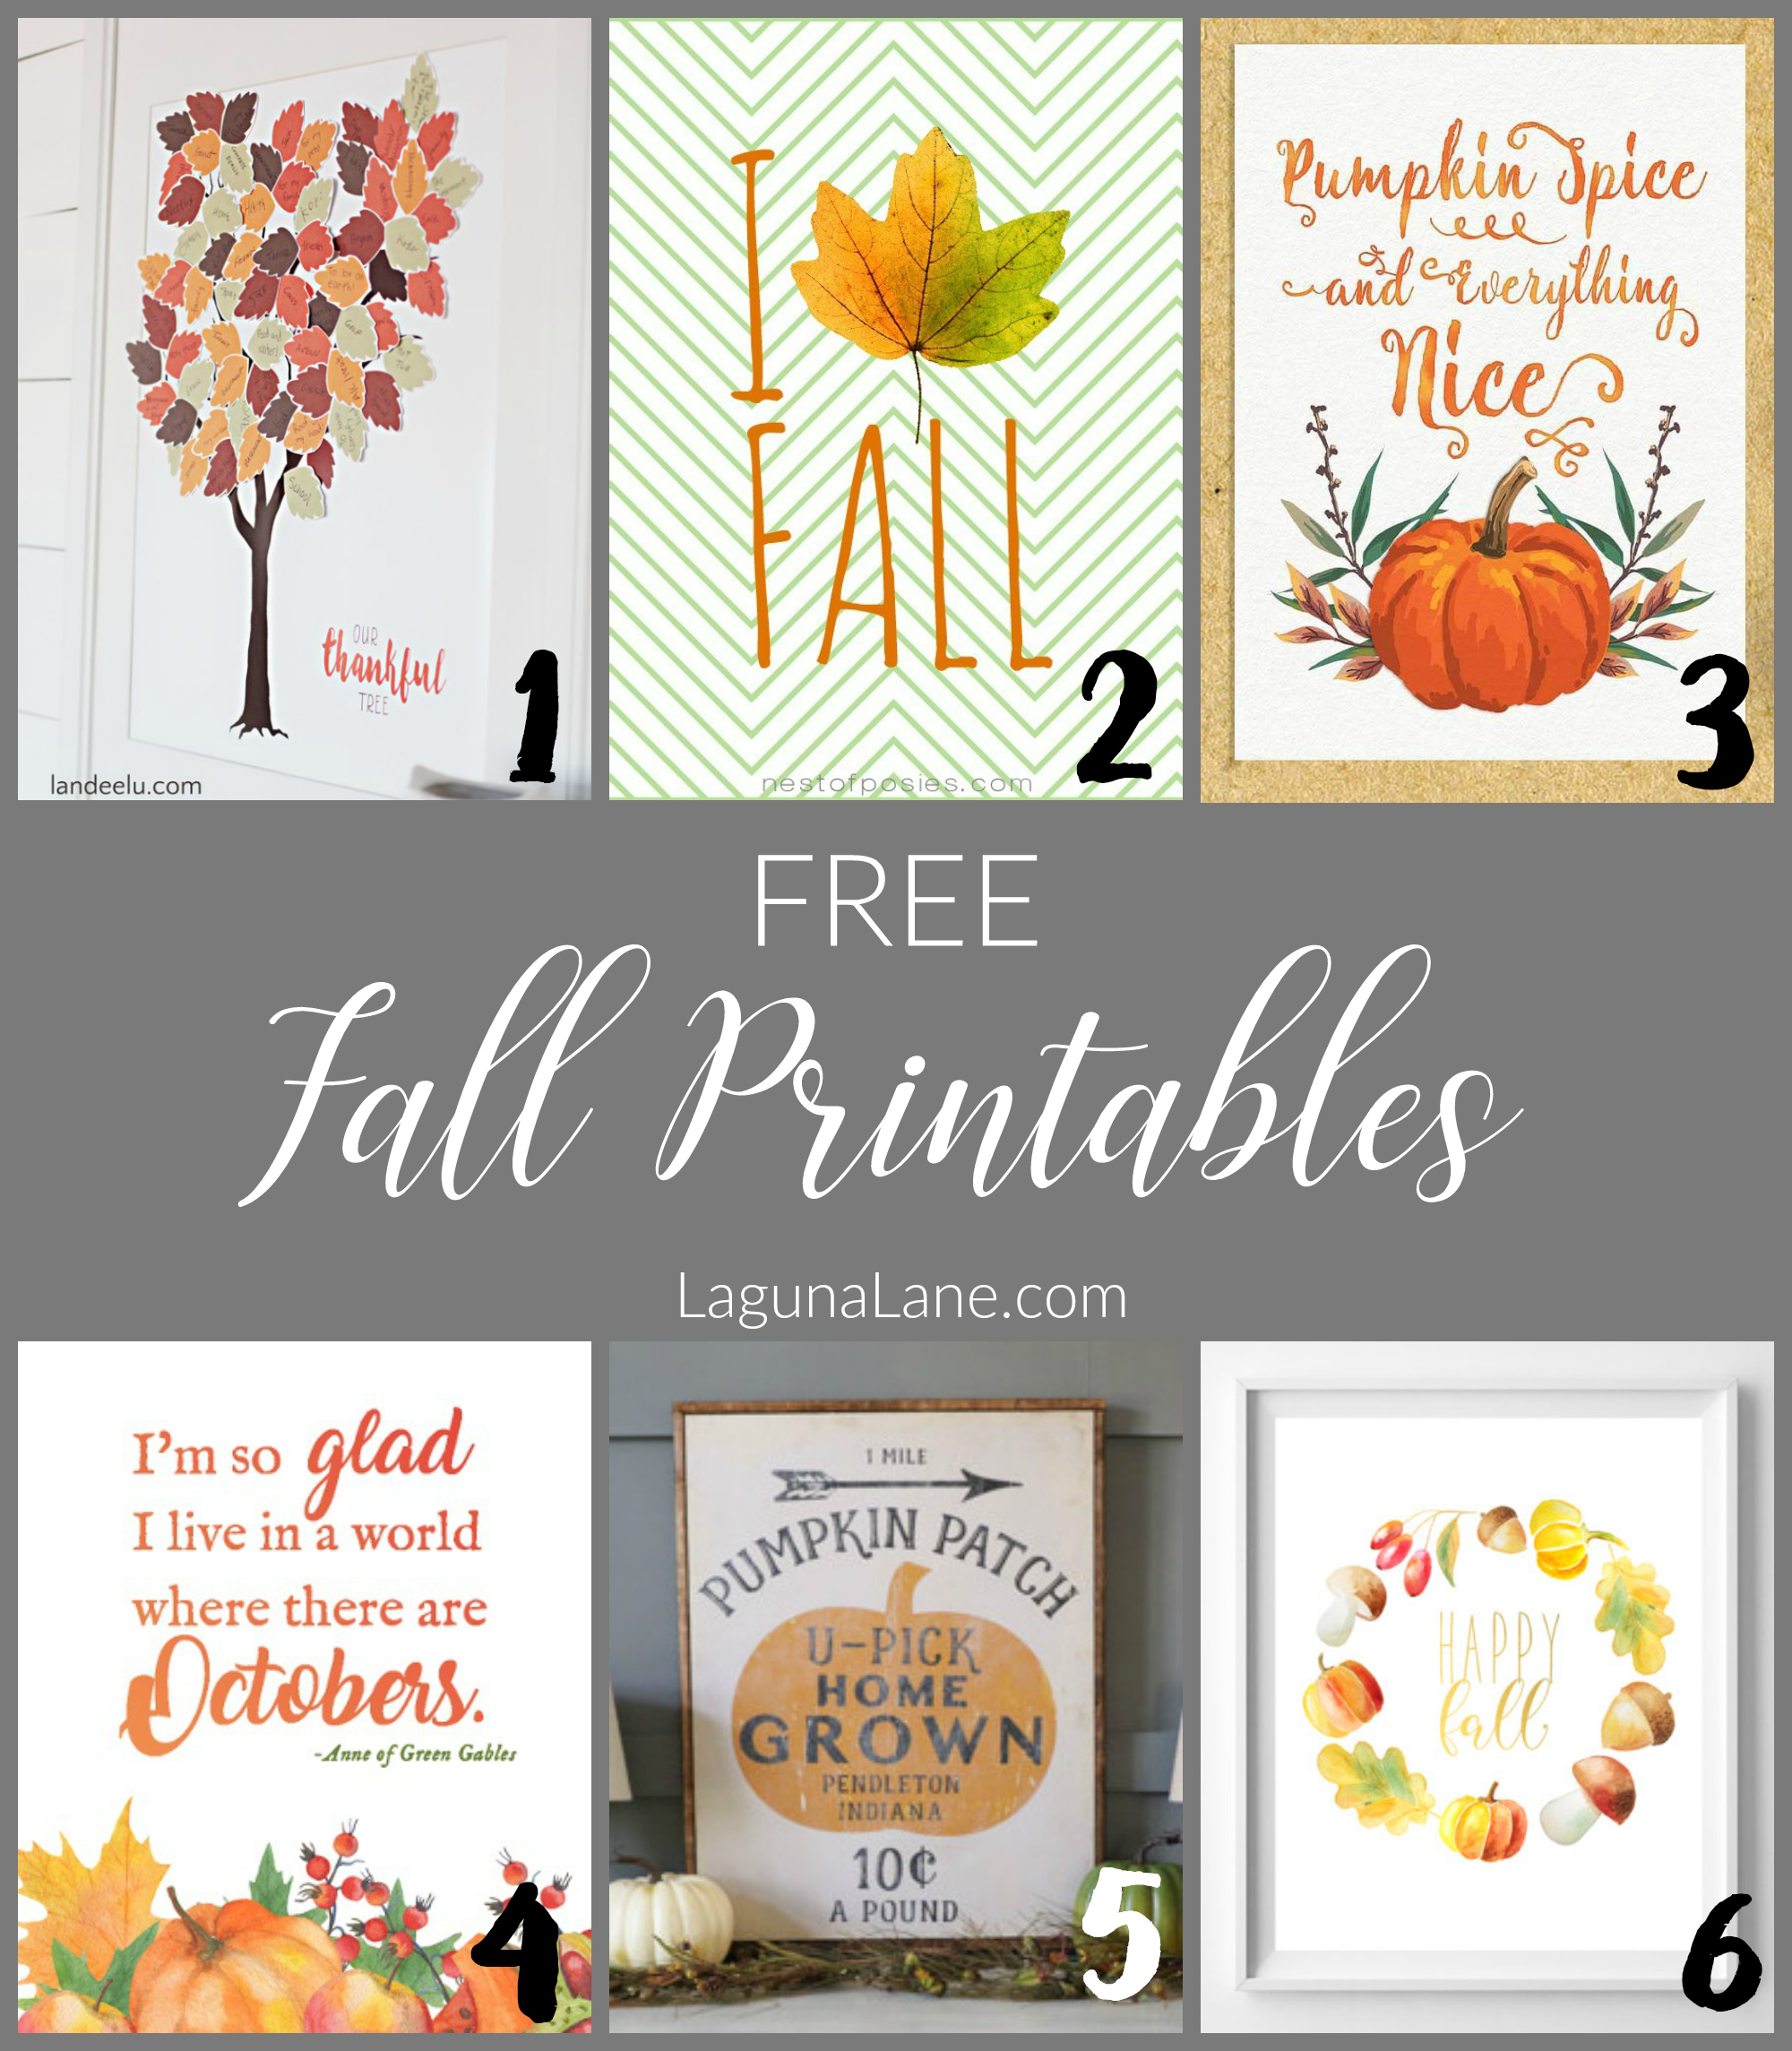 photograph relating to Free Fall Printable called Absolutely free Tumble Printables - An Basic Direction toward Adorn! - Laguna Lane